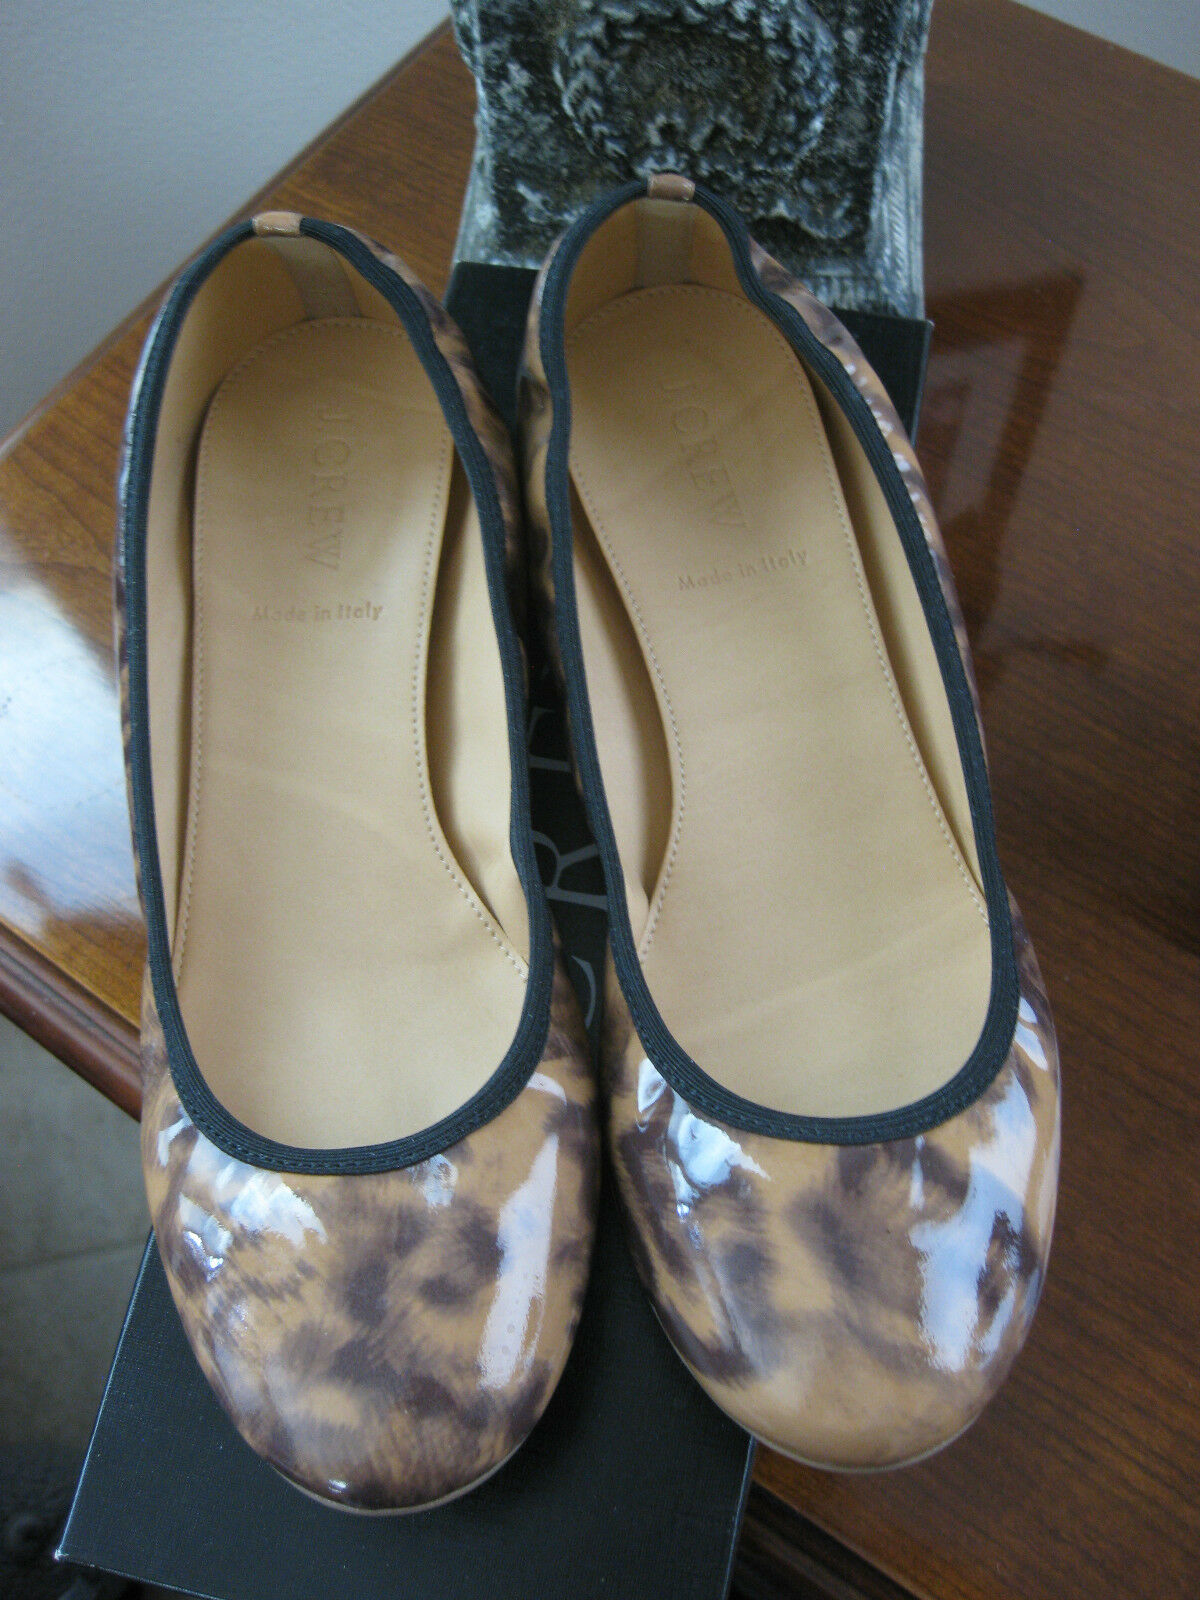 JCREW PRE-OWNED LULA LEOPARD BALLET FLATS PATENT LEATHER   49183 SIZE 7